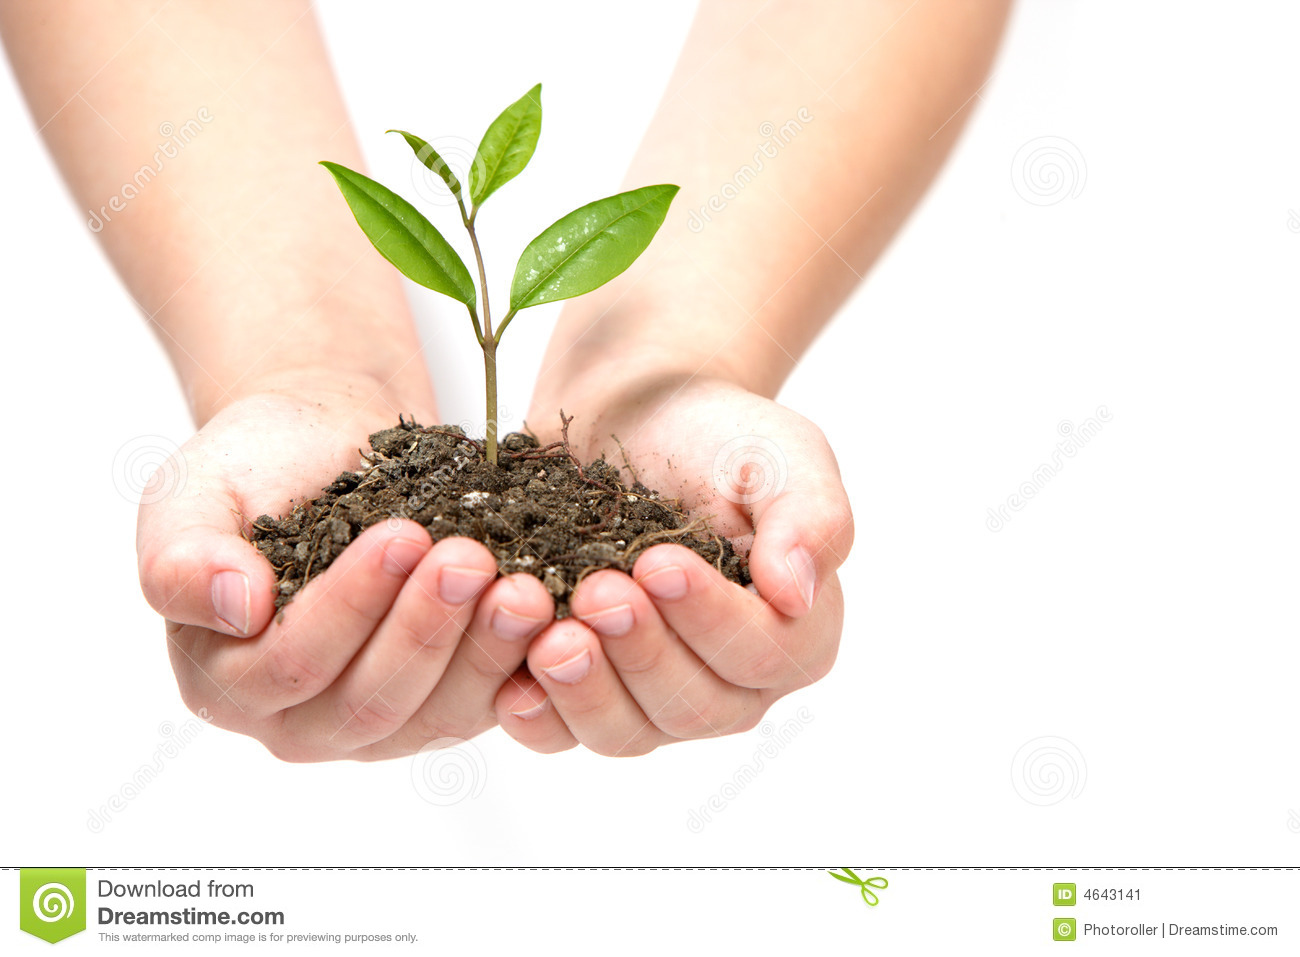 Holding small plant